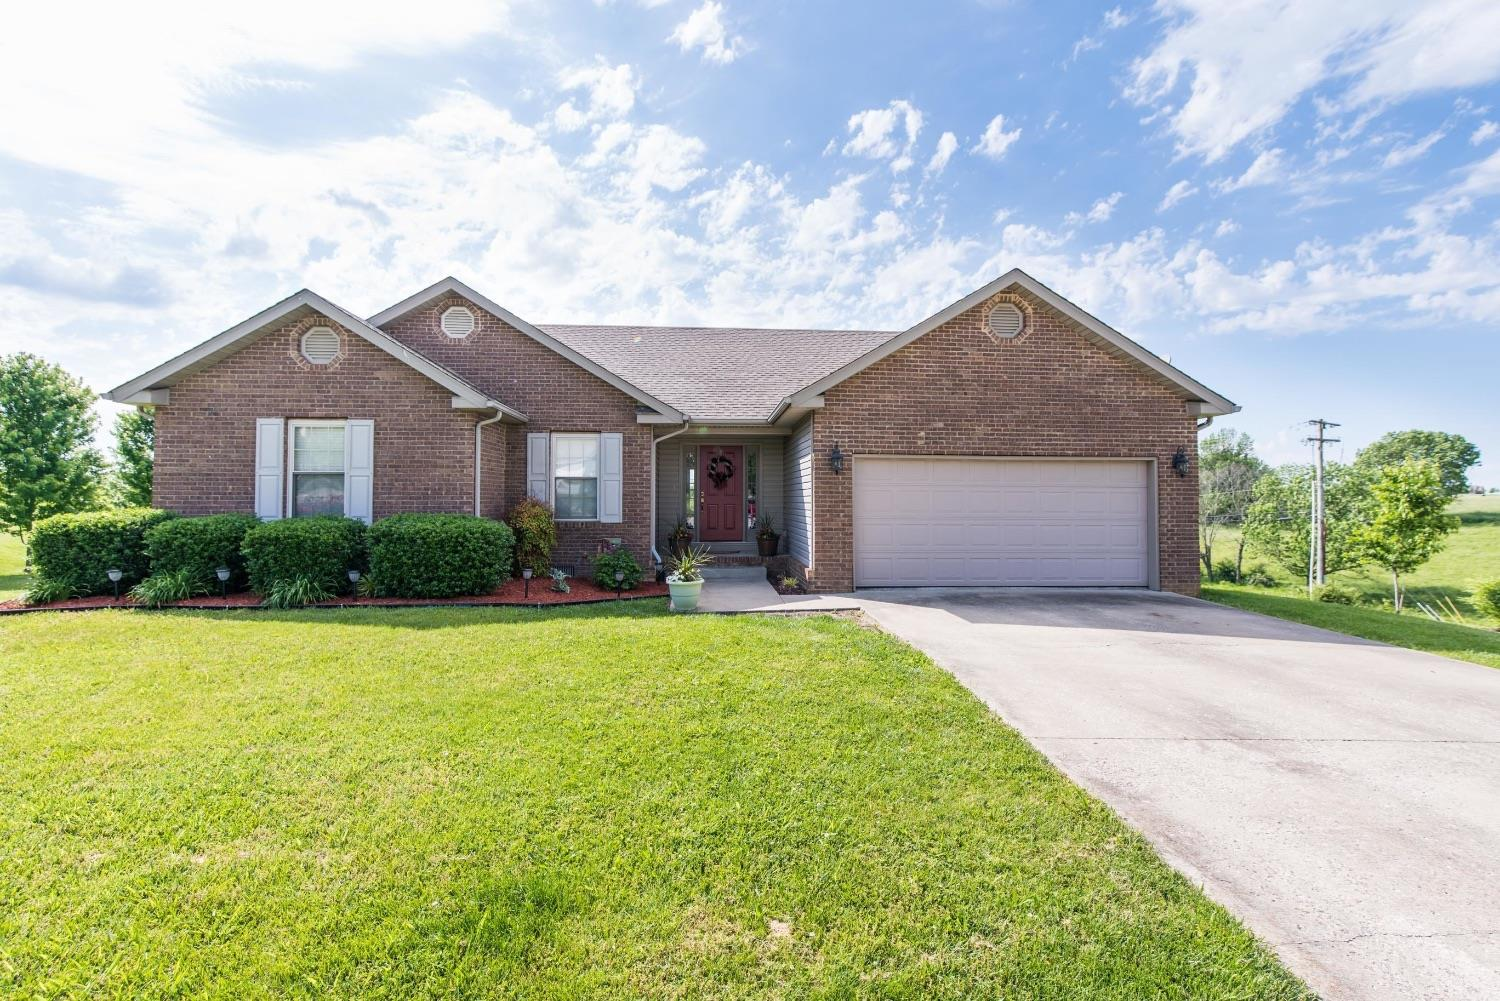 Silver%20Creek Subdivision Mt%20Sterling KY